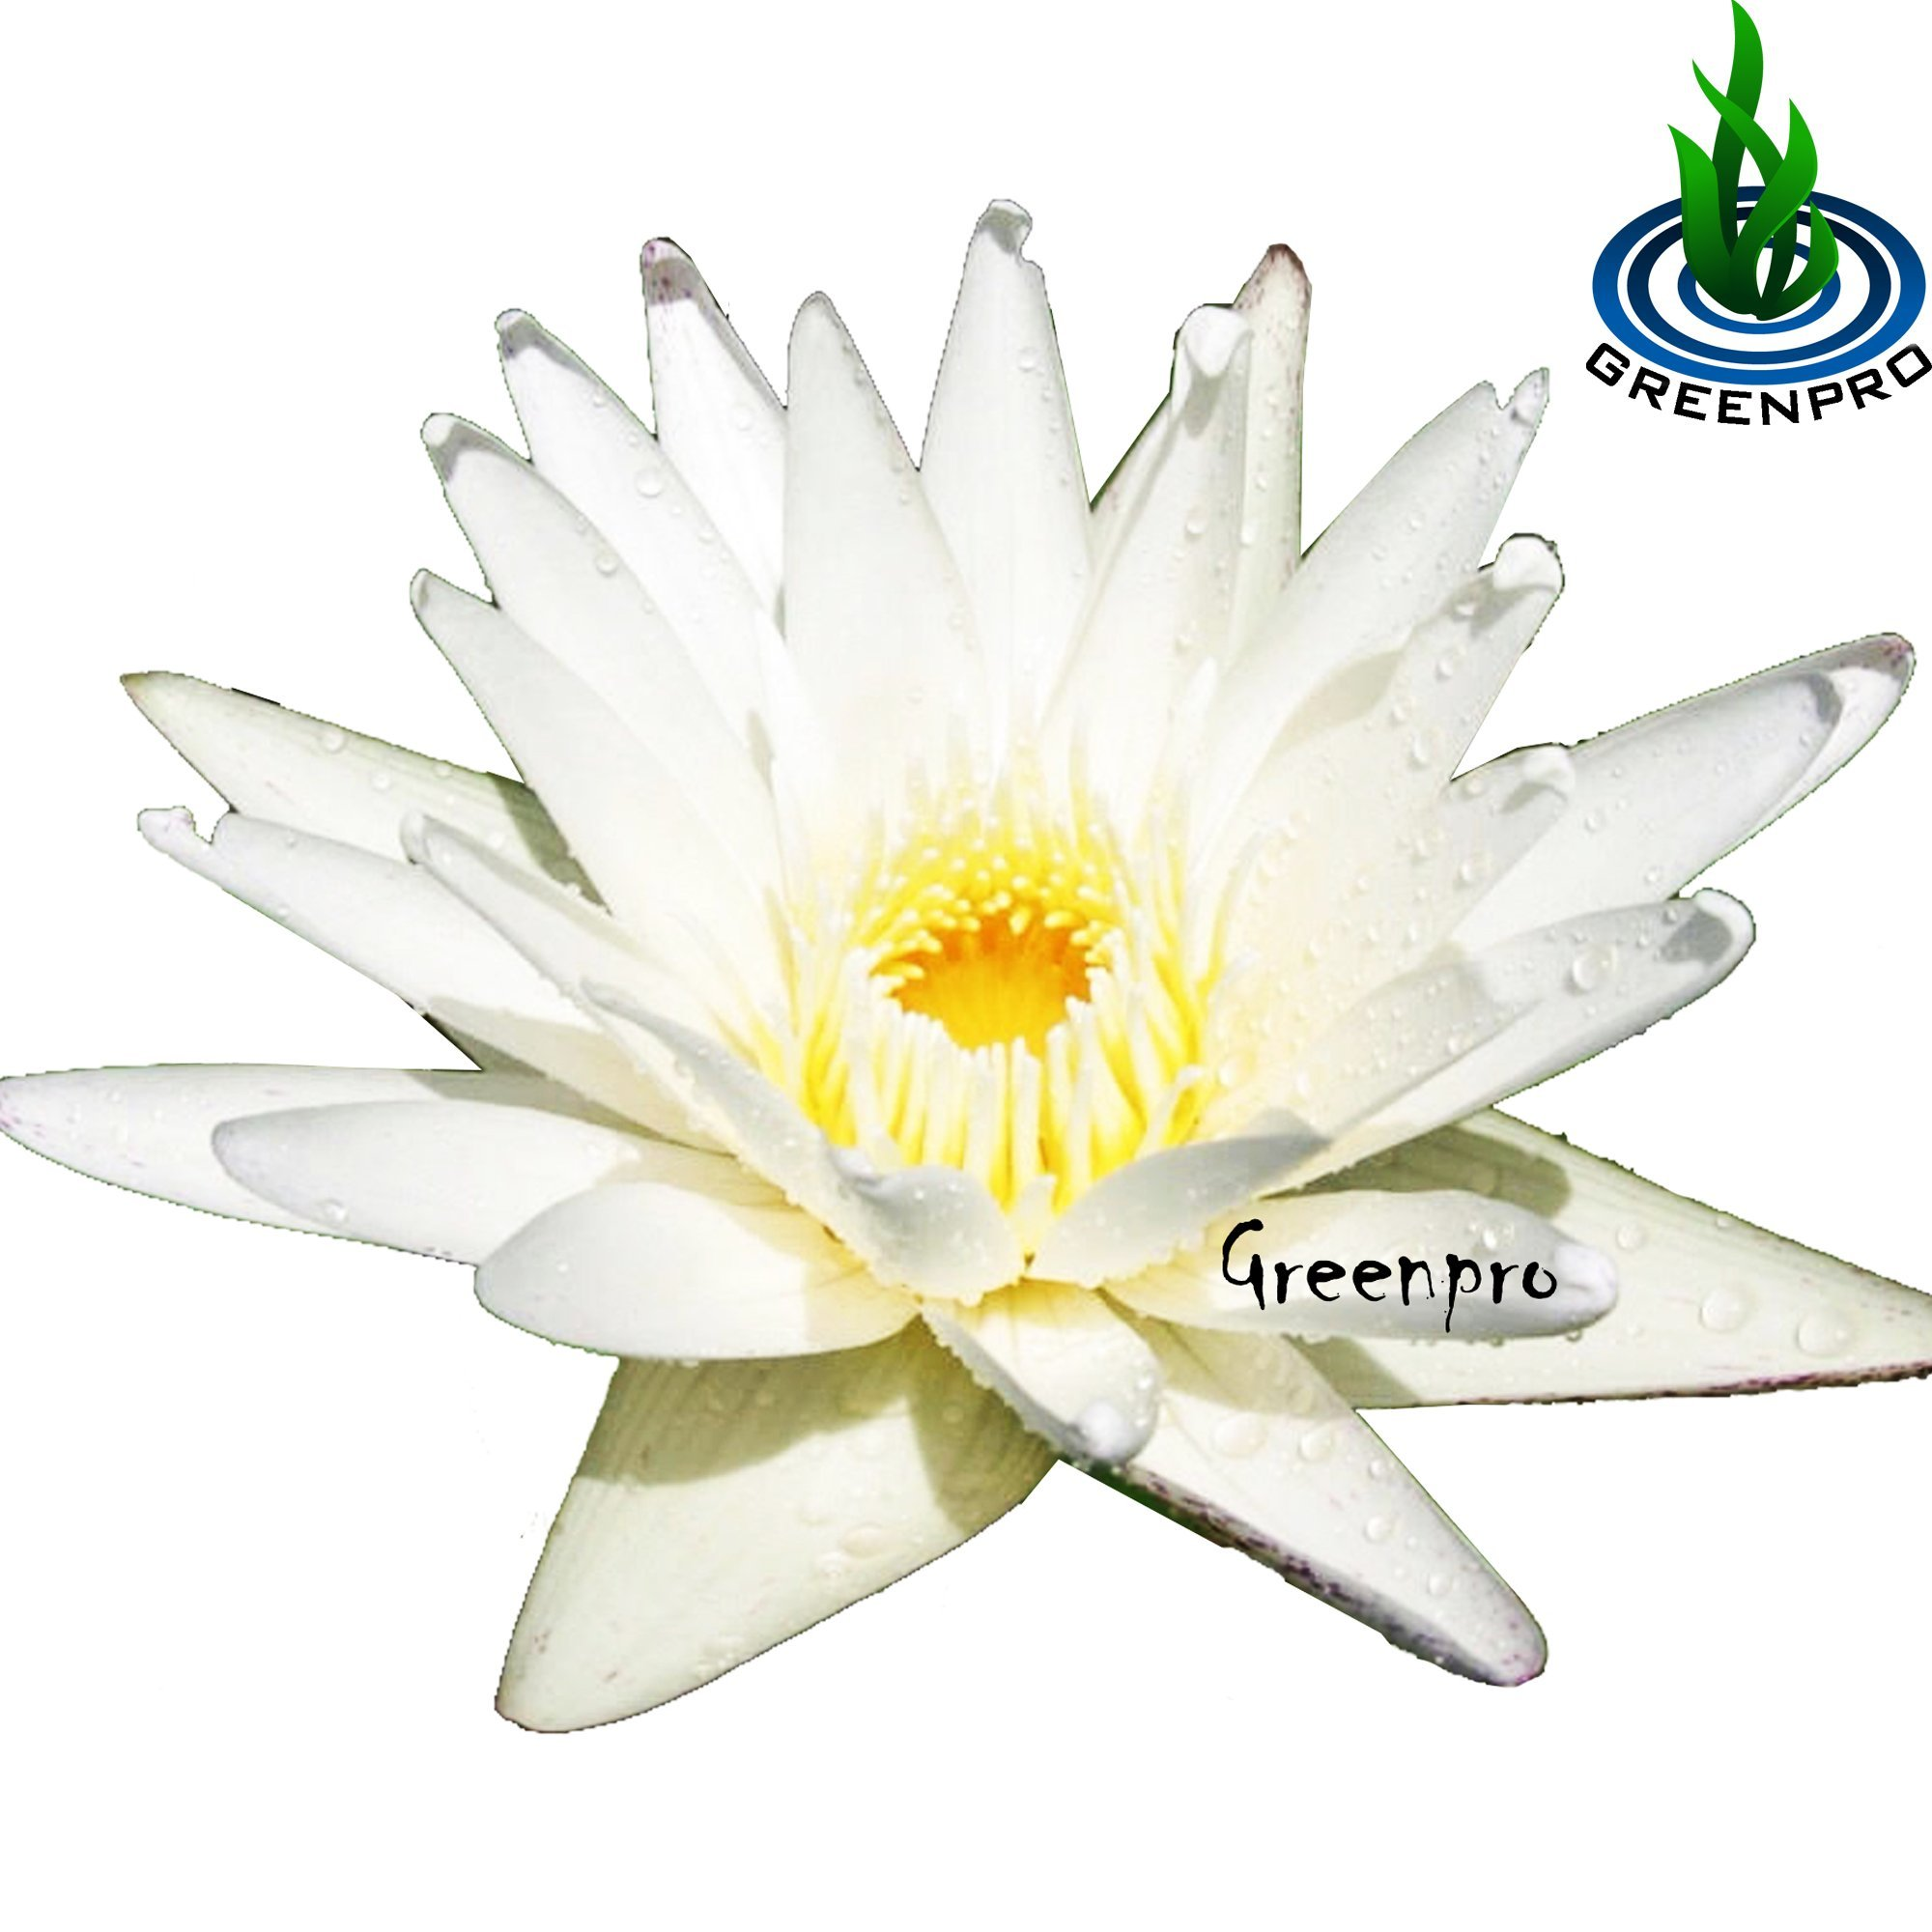 Live Aquatic Plant Nymphaea White Mongkol Siam Tropical Water Lilies Tuber for Aquarium Freshwater Fish Pond by Greenpro